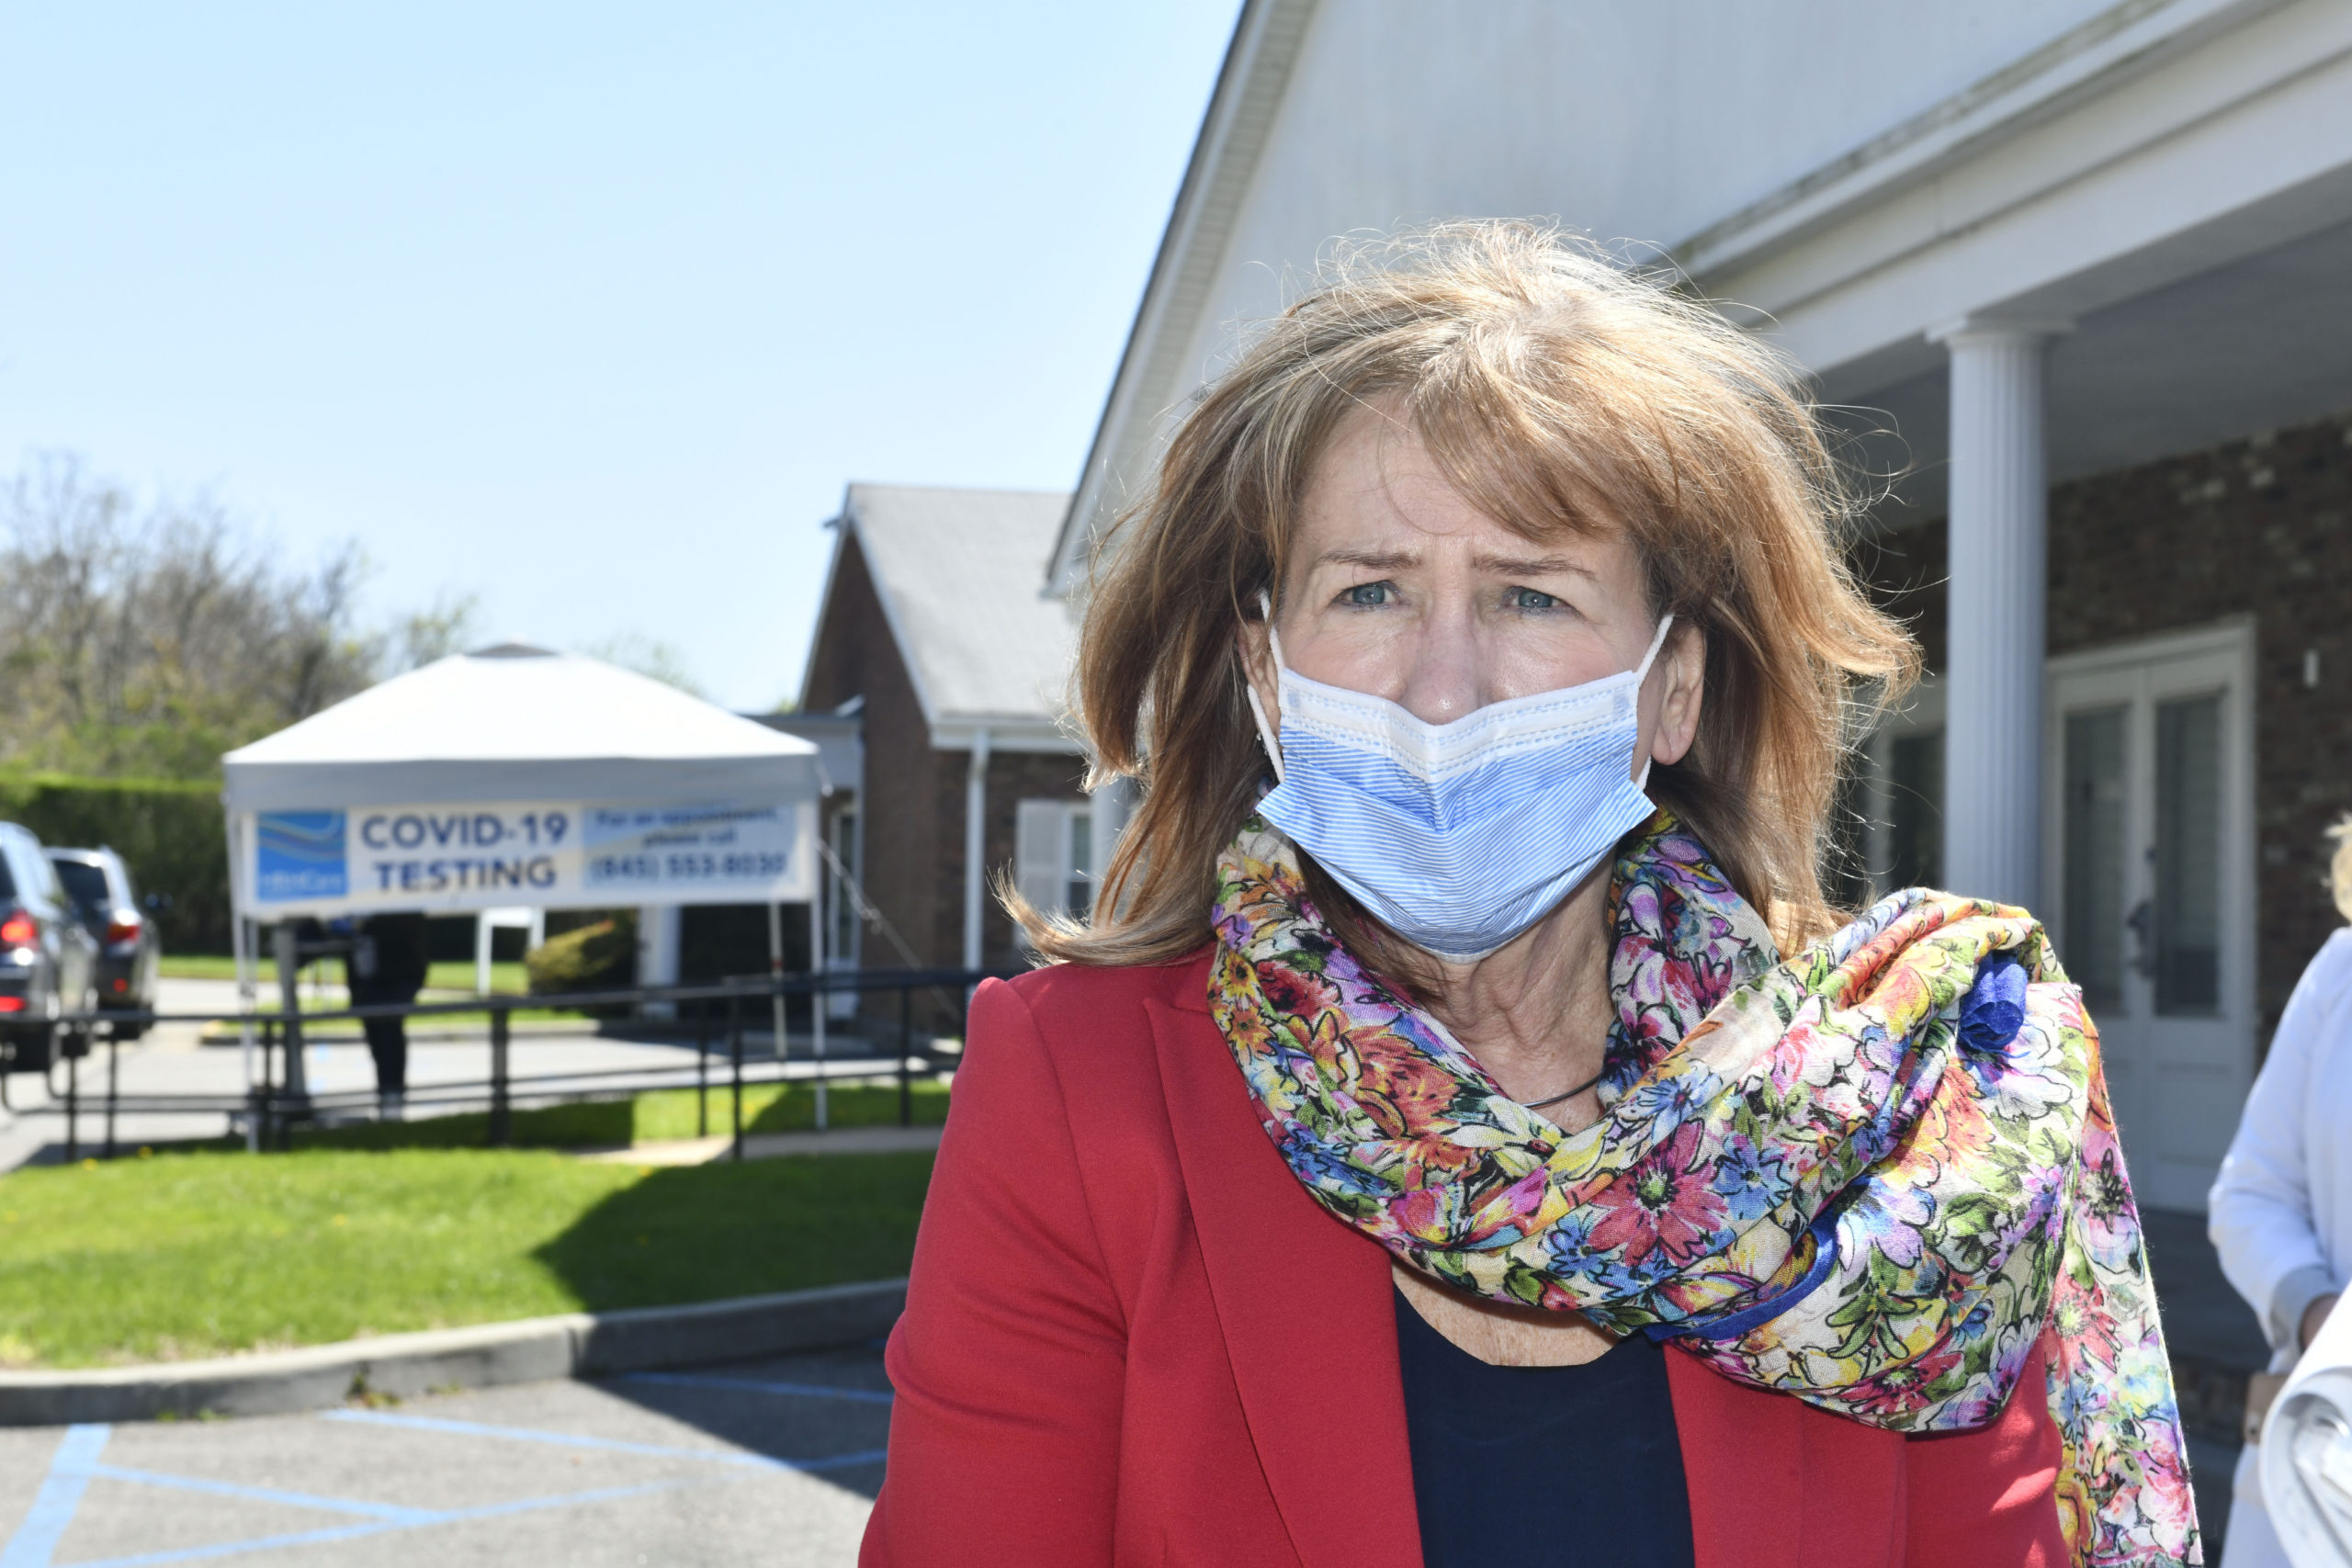 Anne Kauffman Nolon, CEO of HRHCare at the testing site in Southampton on Thursday, May 7.  DANA SHAW